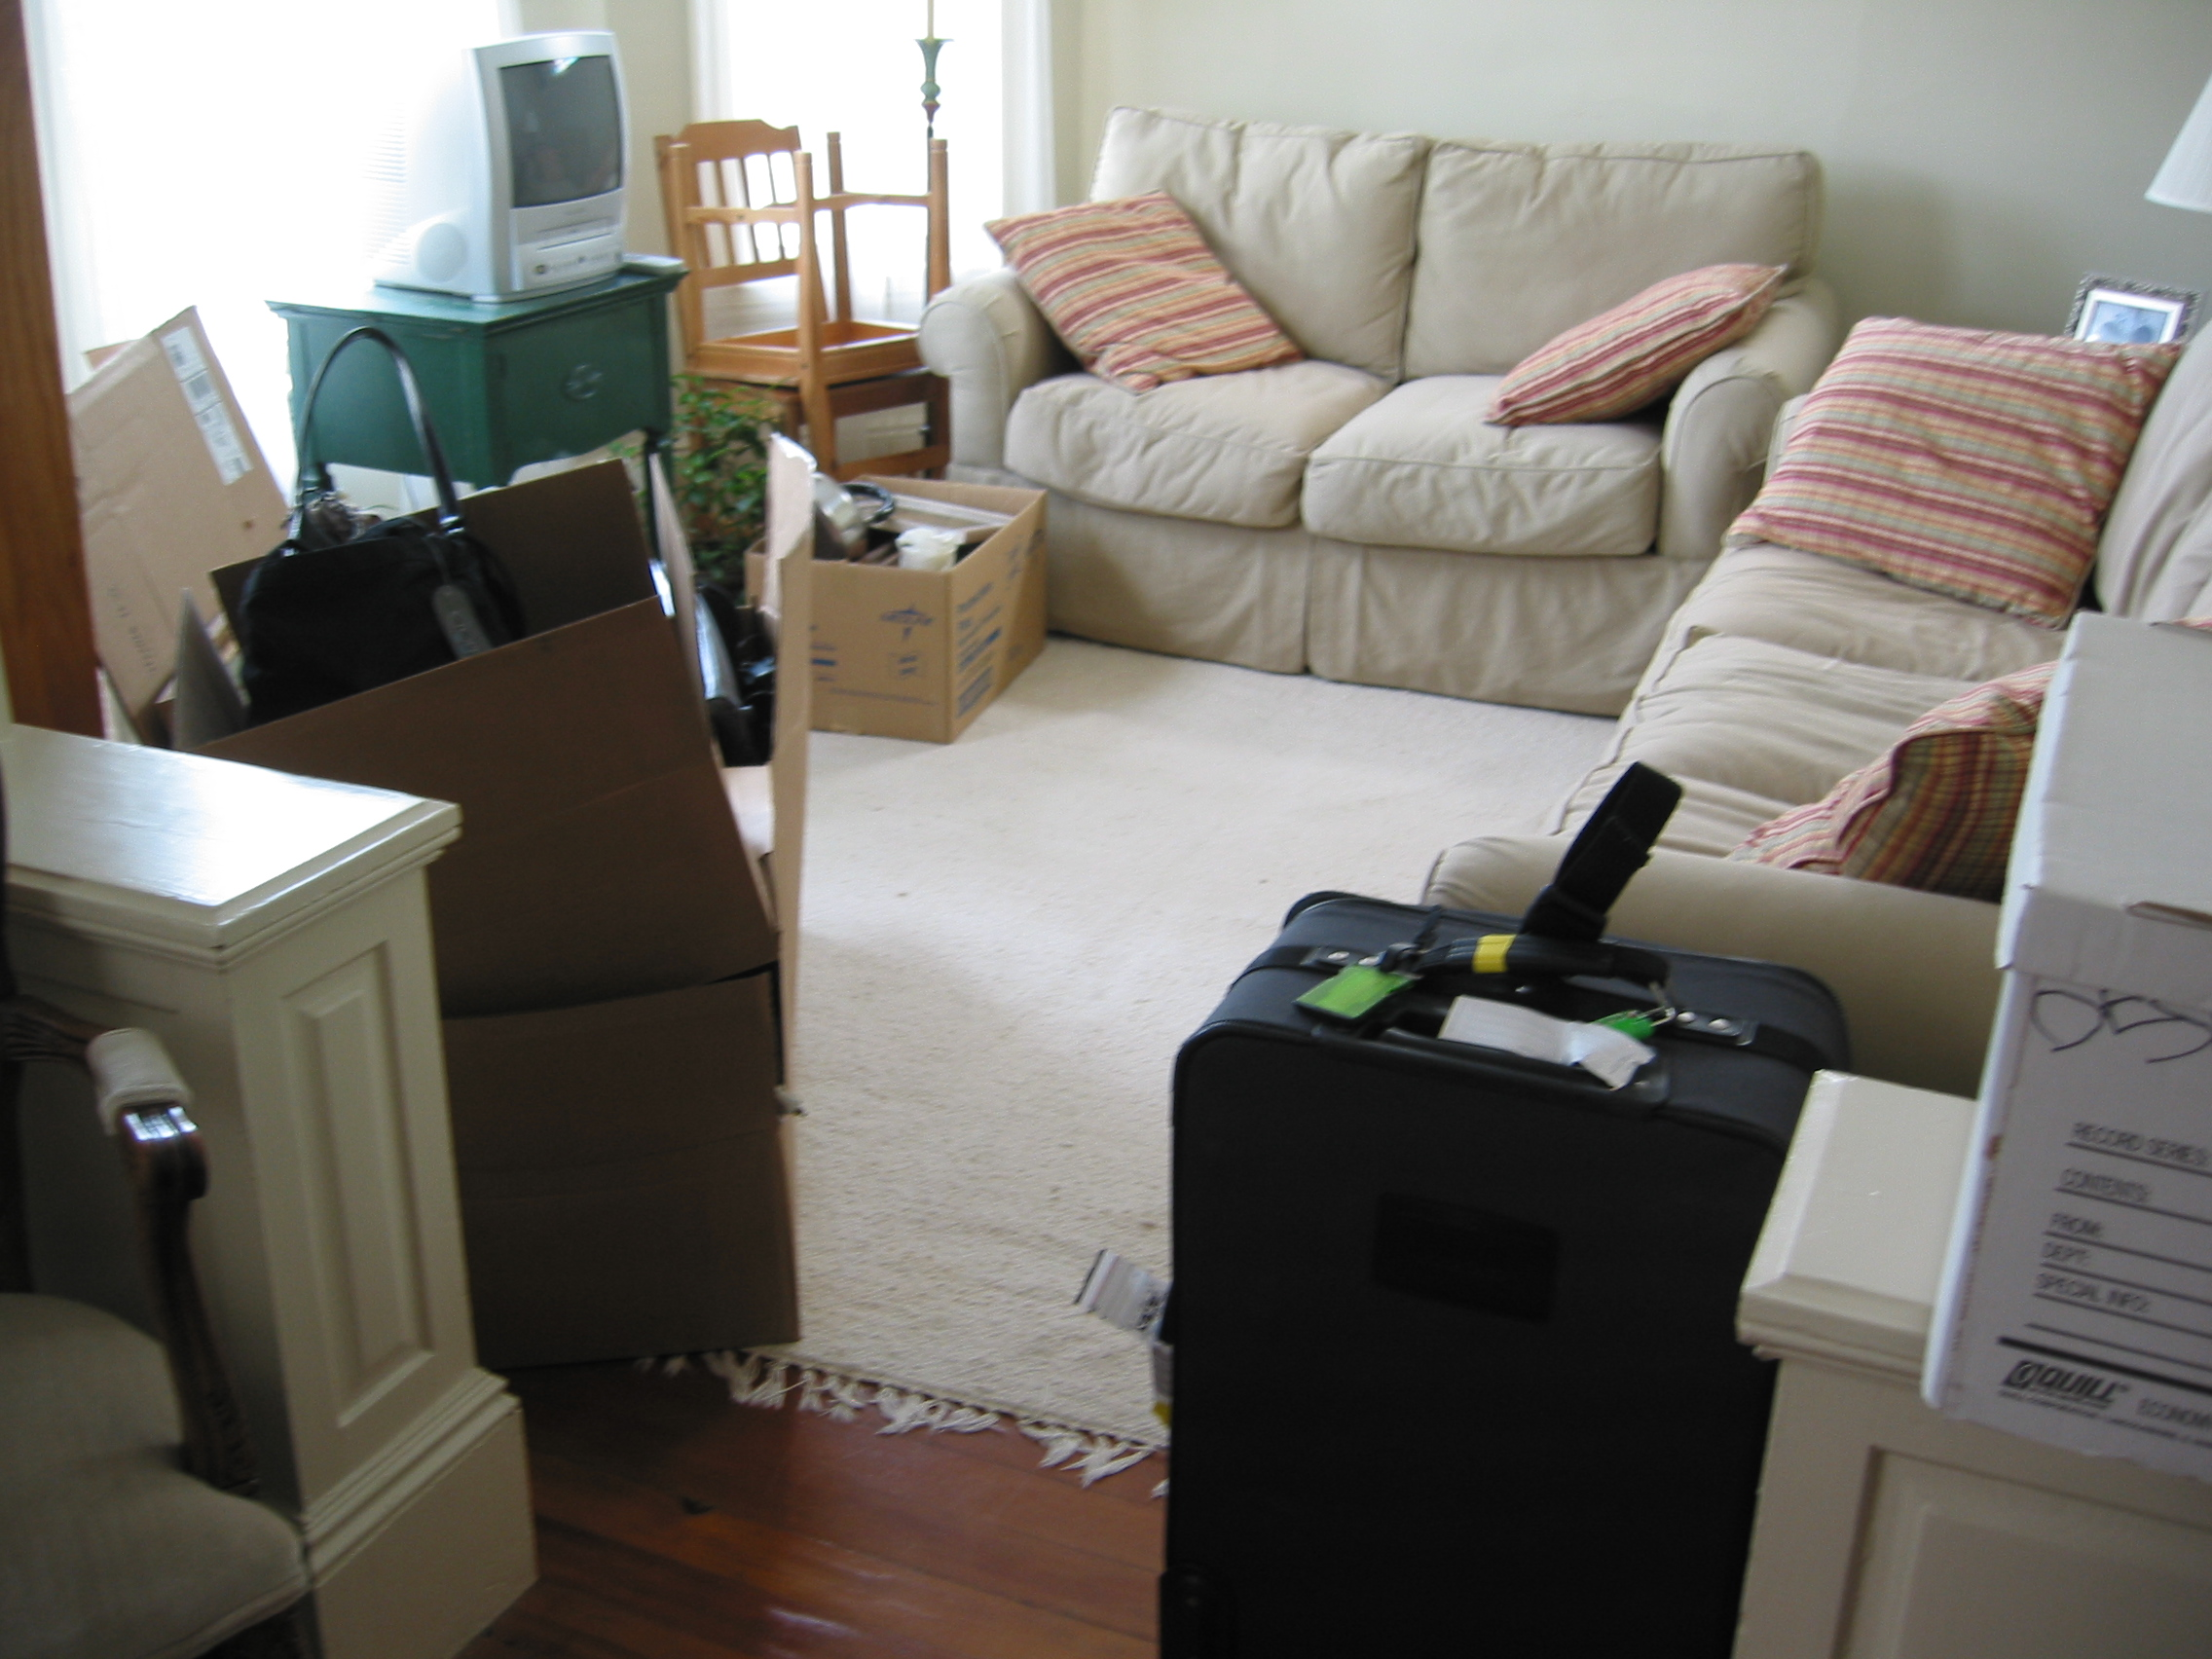 ... Bearing The Hideous Television, You Can See The Table In Question, In  My Shared Apartment In 2005. (All The Nicer Furniture Belonged To My  Roommate.)